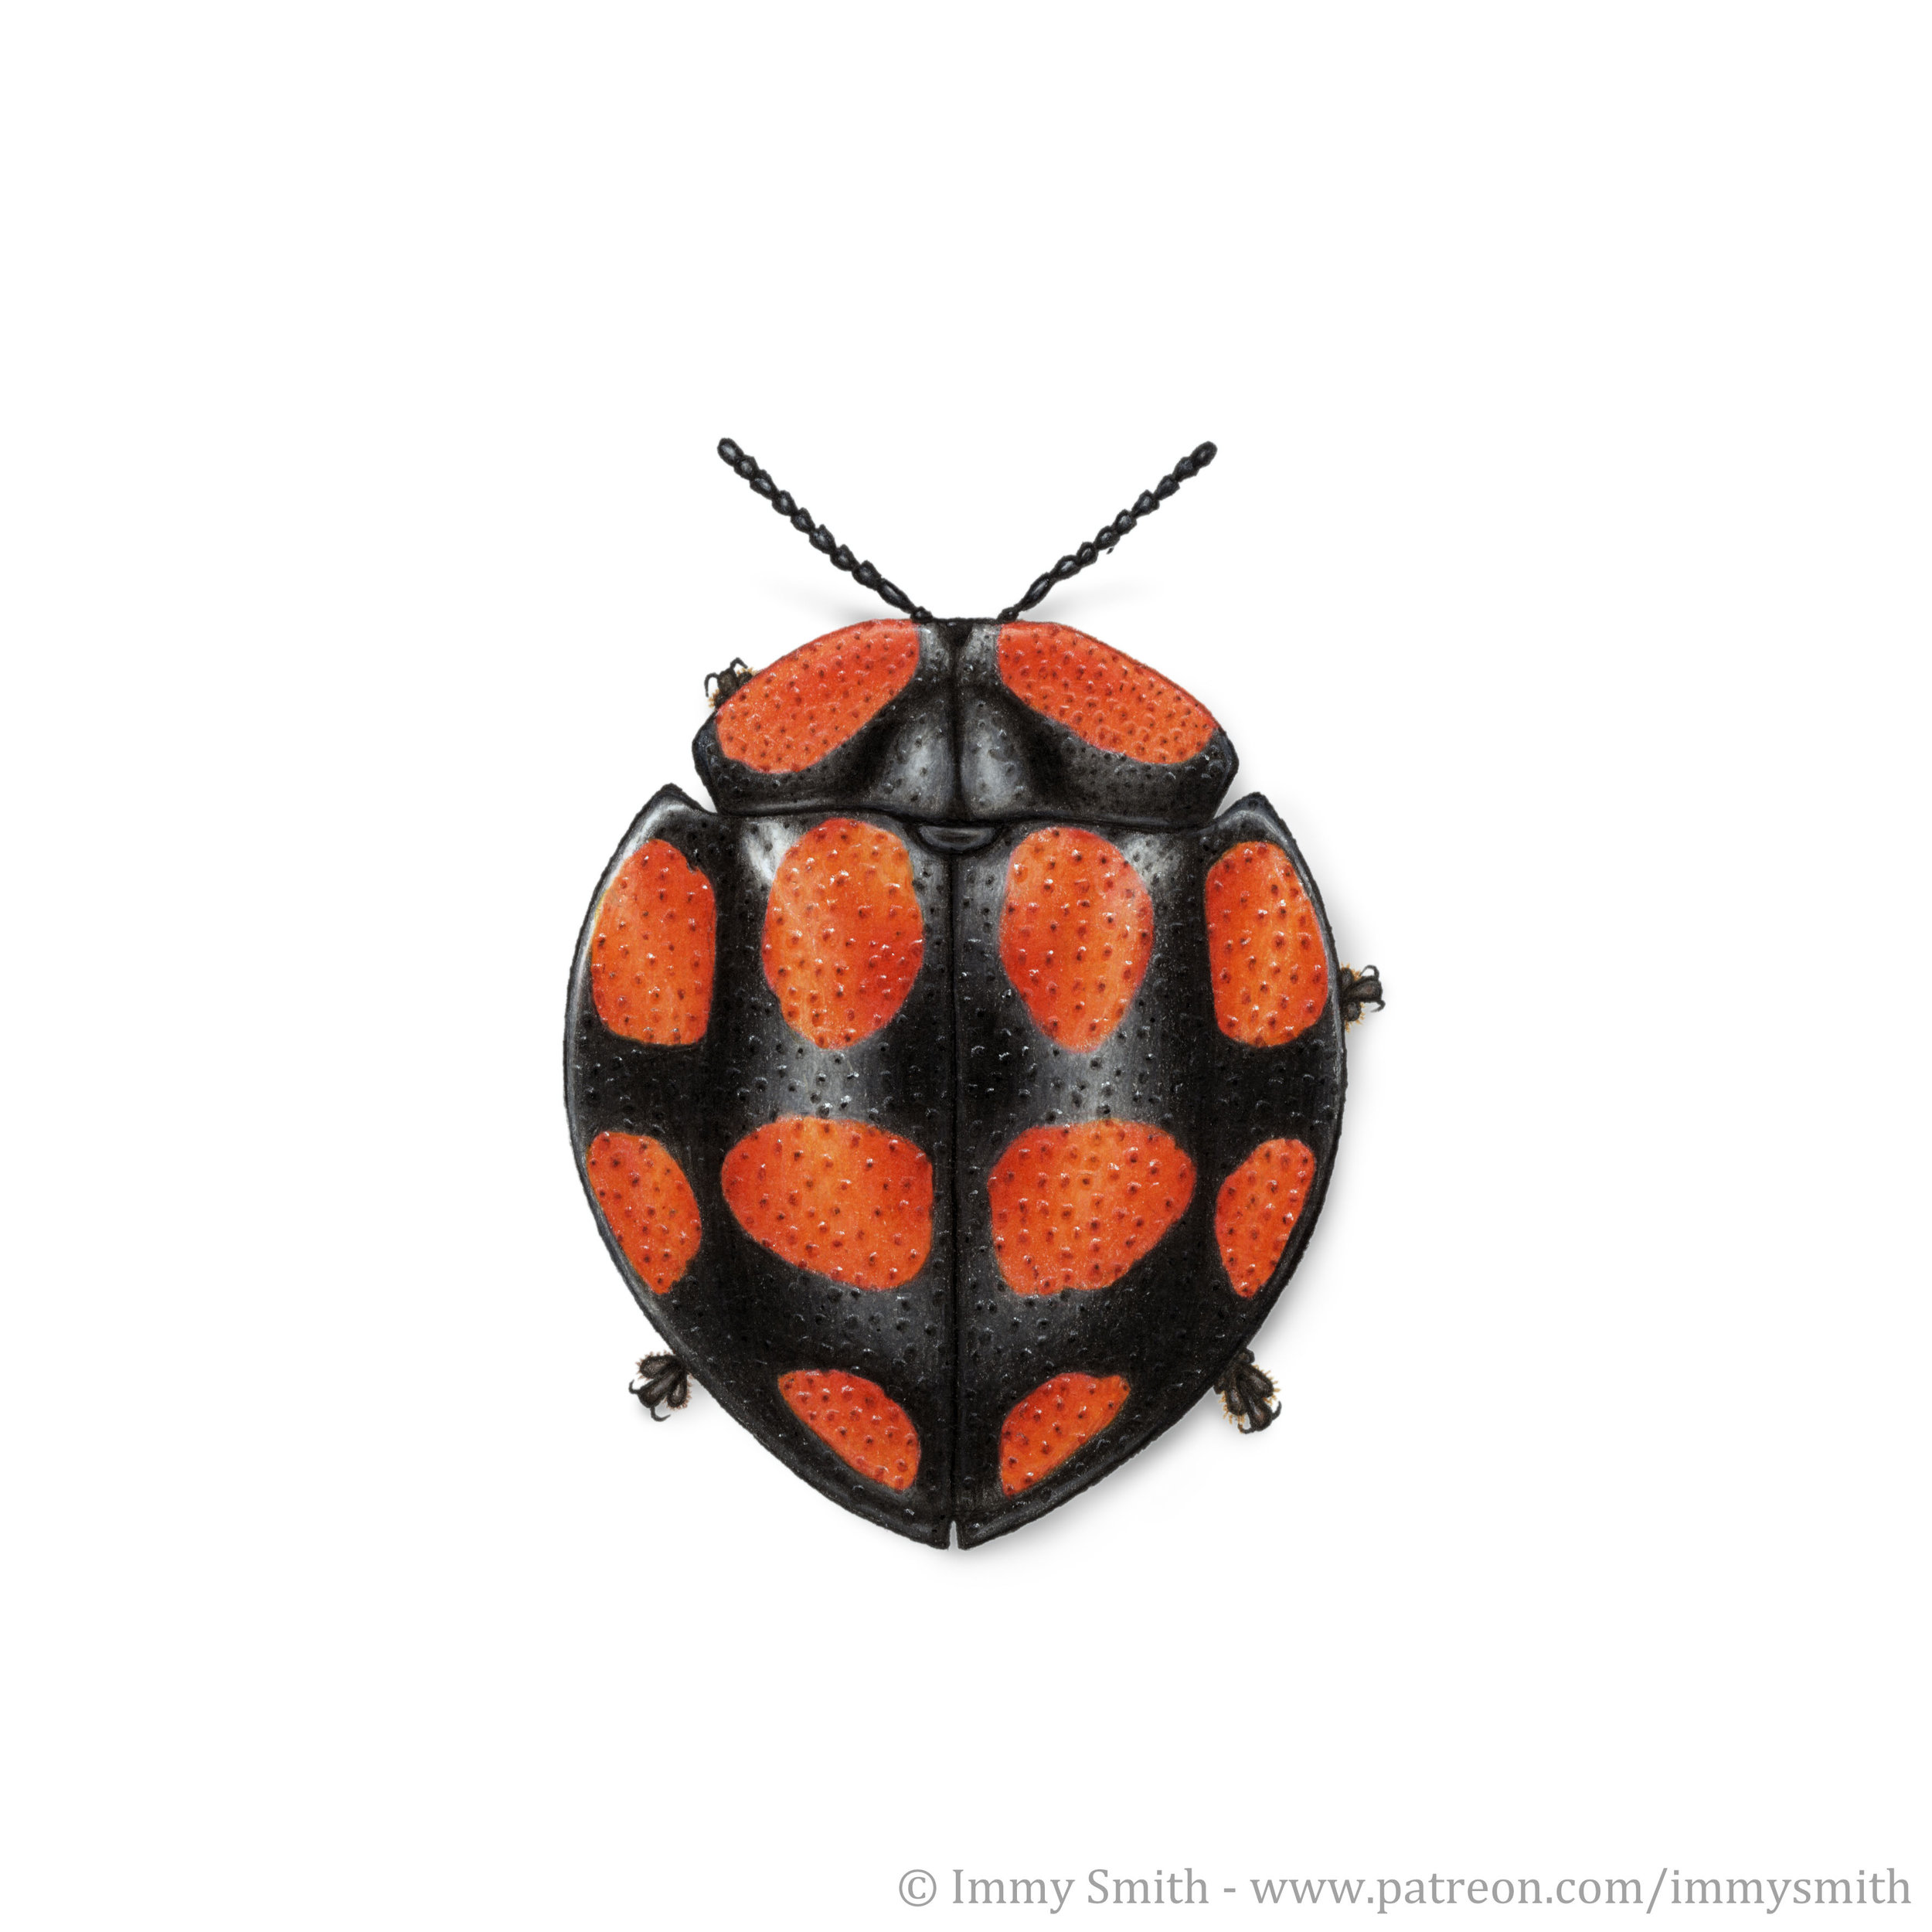 A black and red spotted tortoise beetle drawn in colour pencil